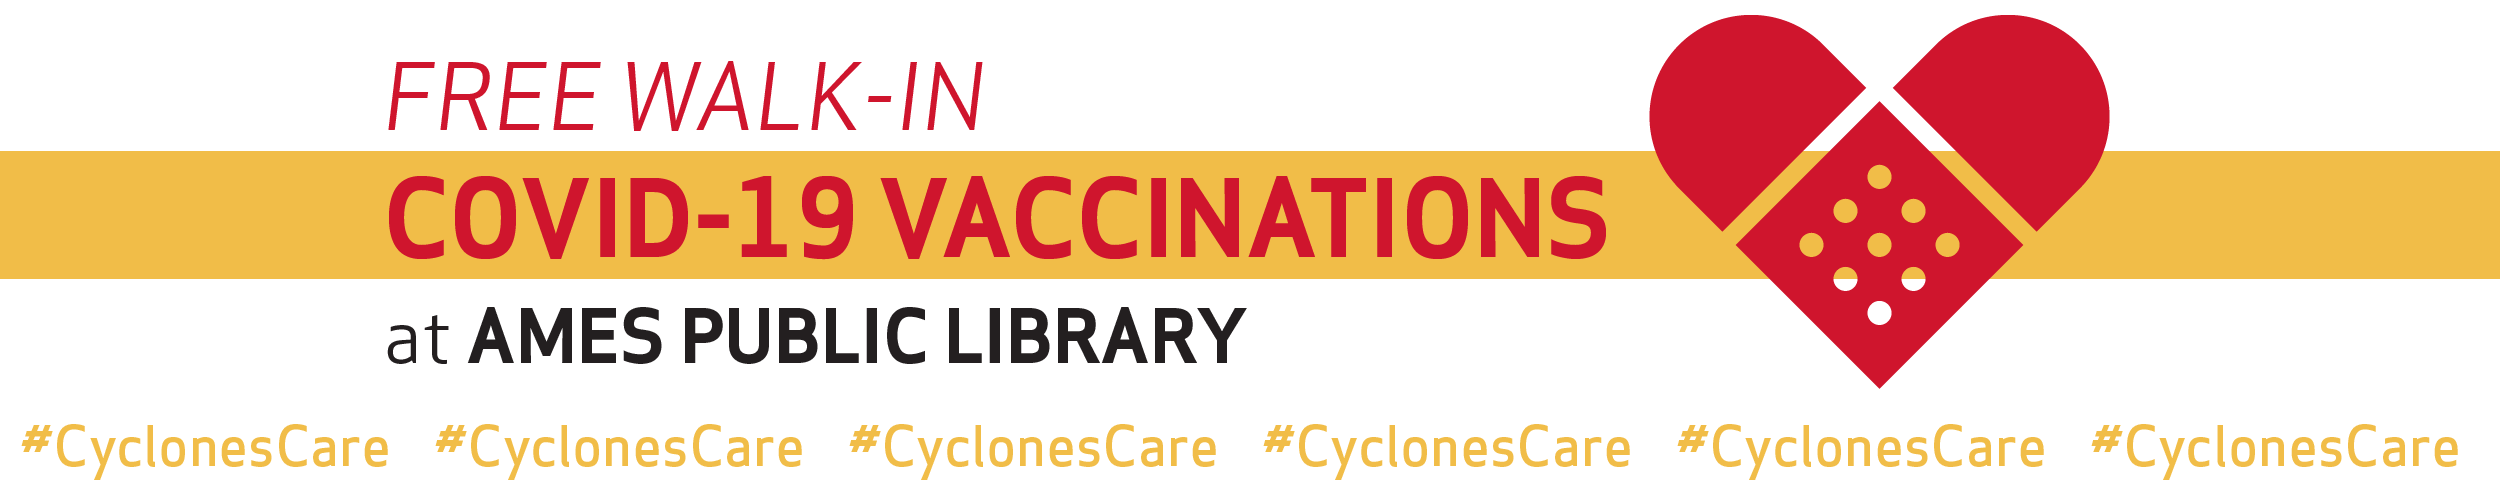 Free Walk-in COVID-19 Vaccinations at Ames Public Library. #CyclonesCare